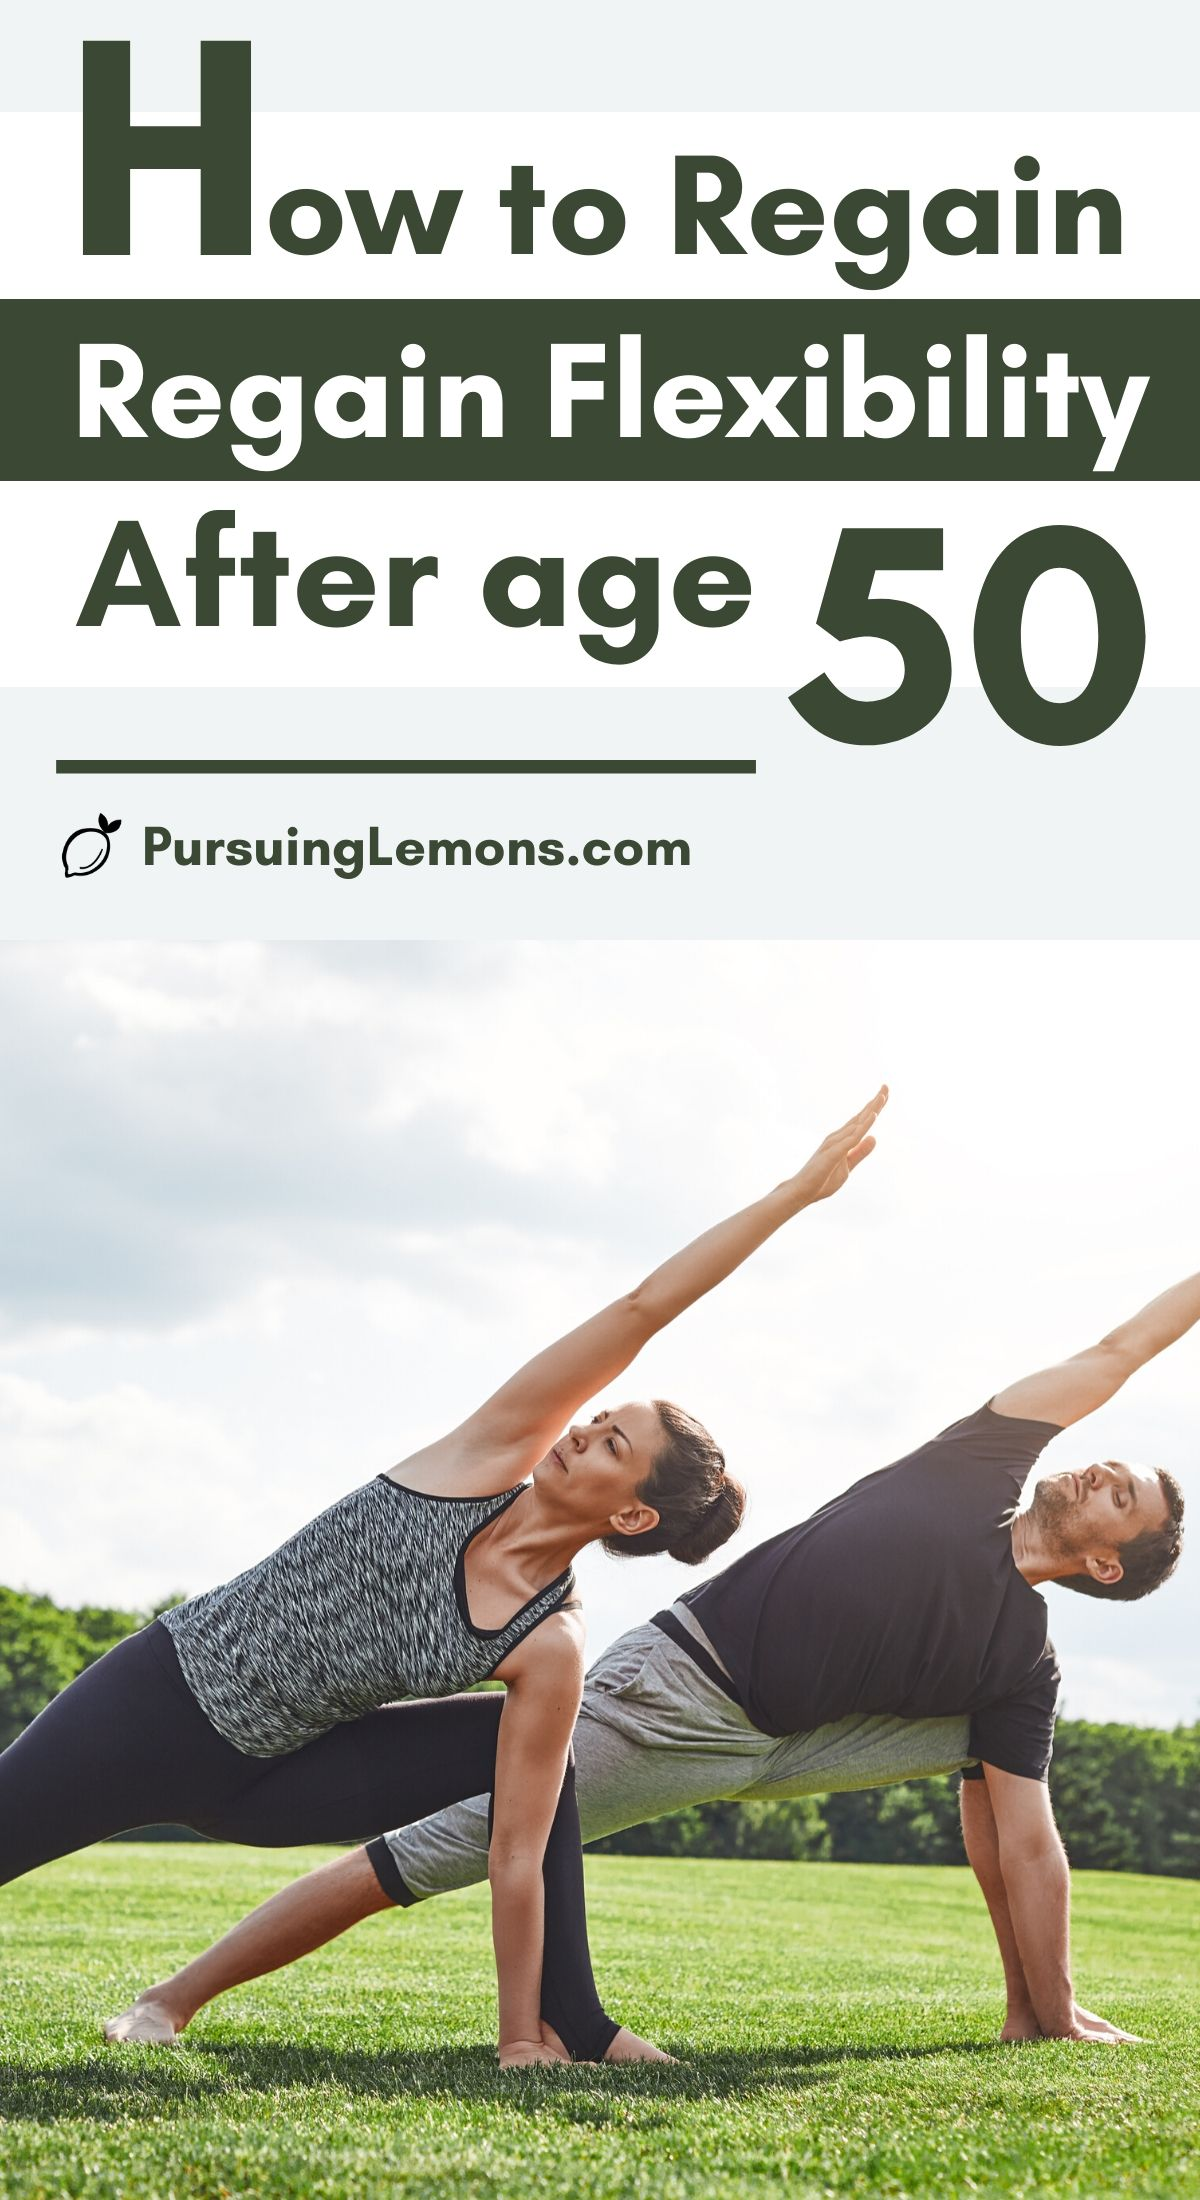 How To Regain Flexibility After 50   Old age can affect our flexibility if we don't usually stretch. Practice these yoga poses & yoga stretches regularly to regain flexibility even if you're 50. You will start feeling like your younger self again! #yoga #flexibility #yogaposes #regainflexibility